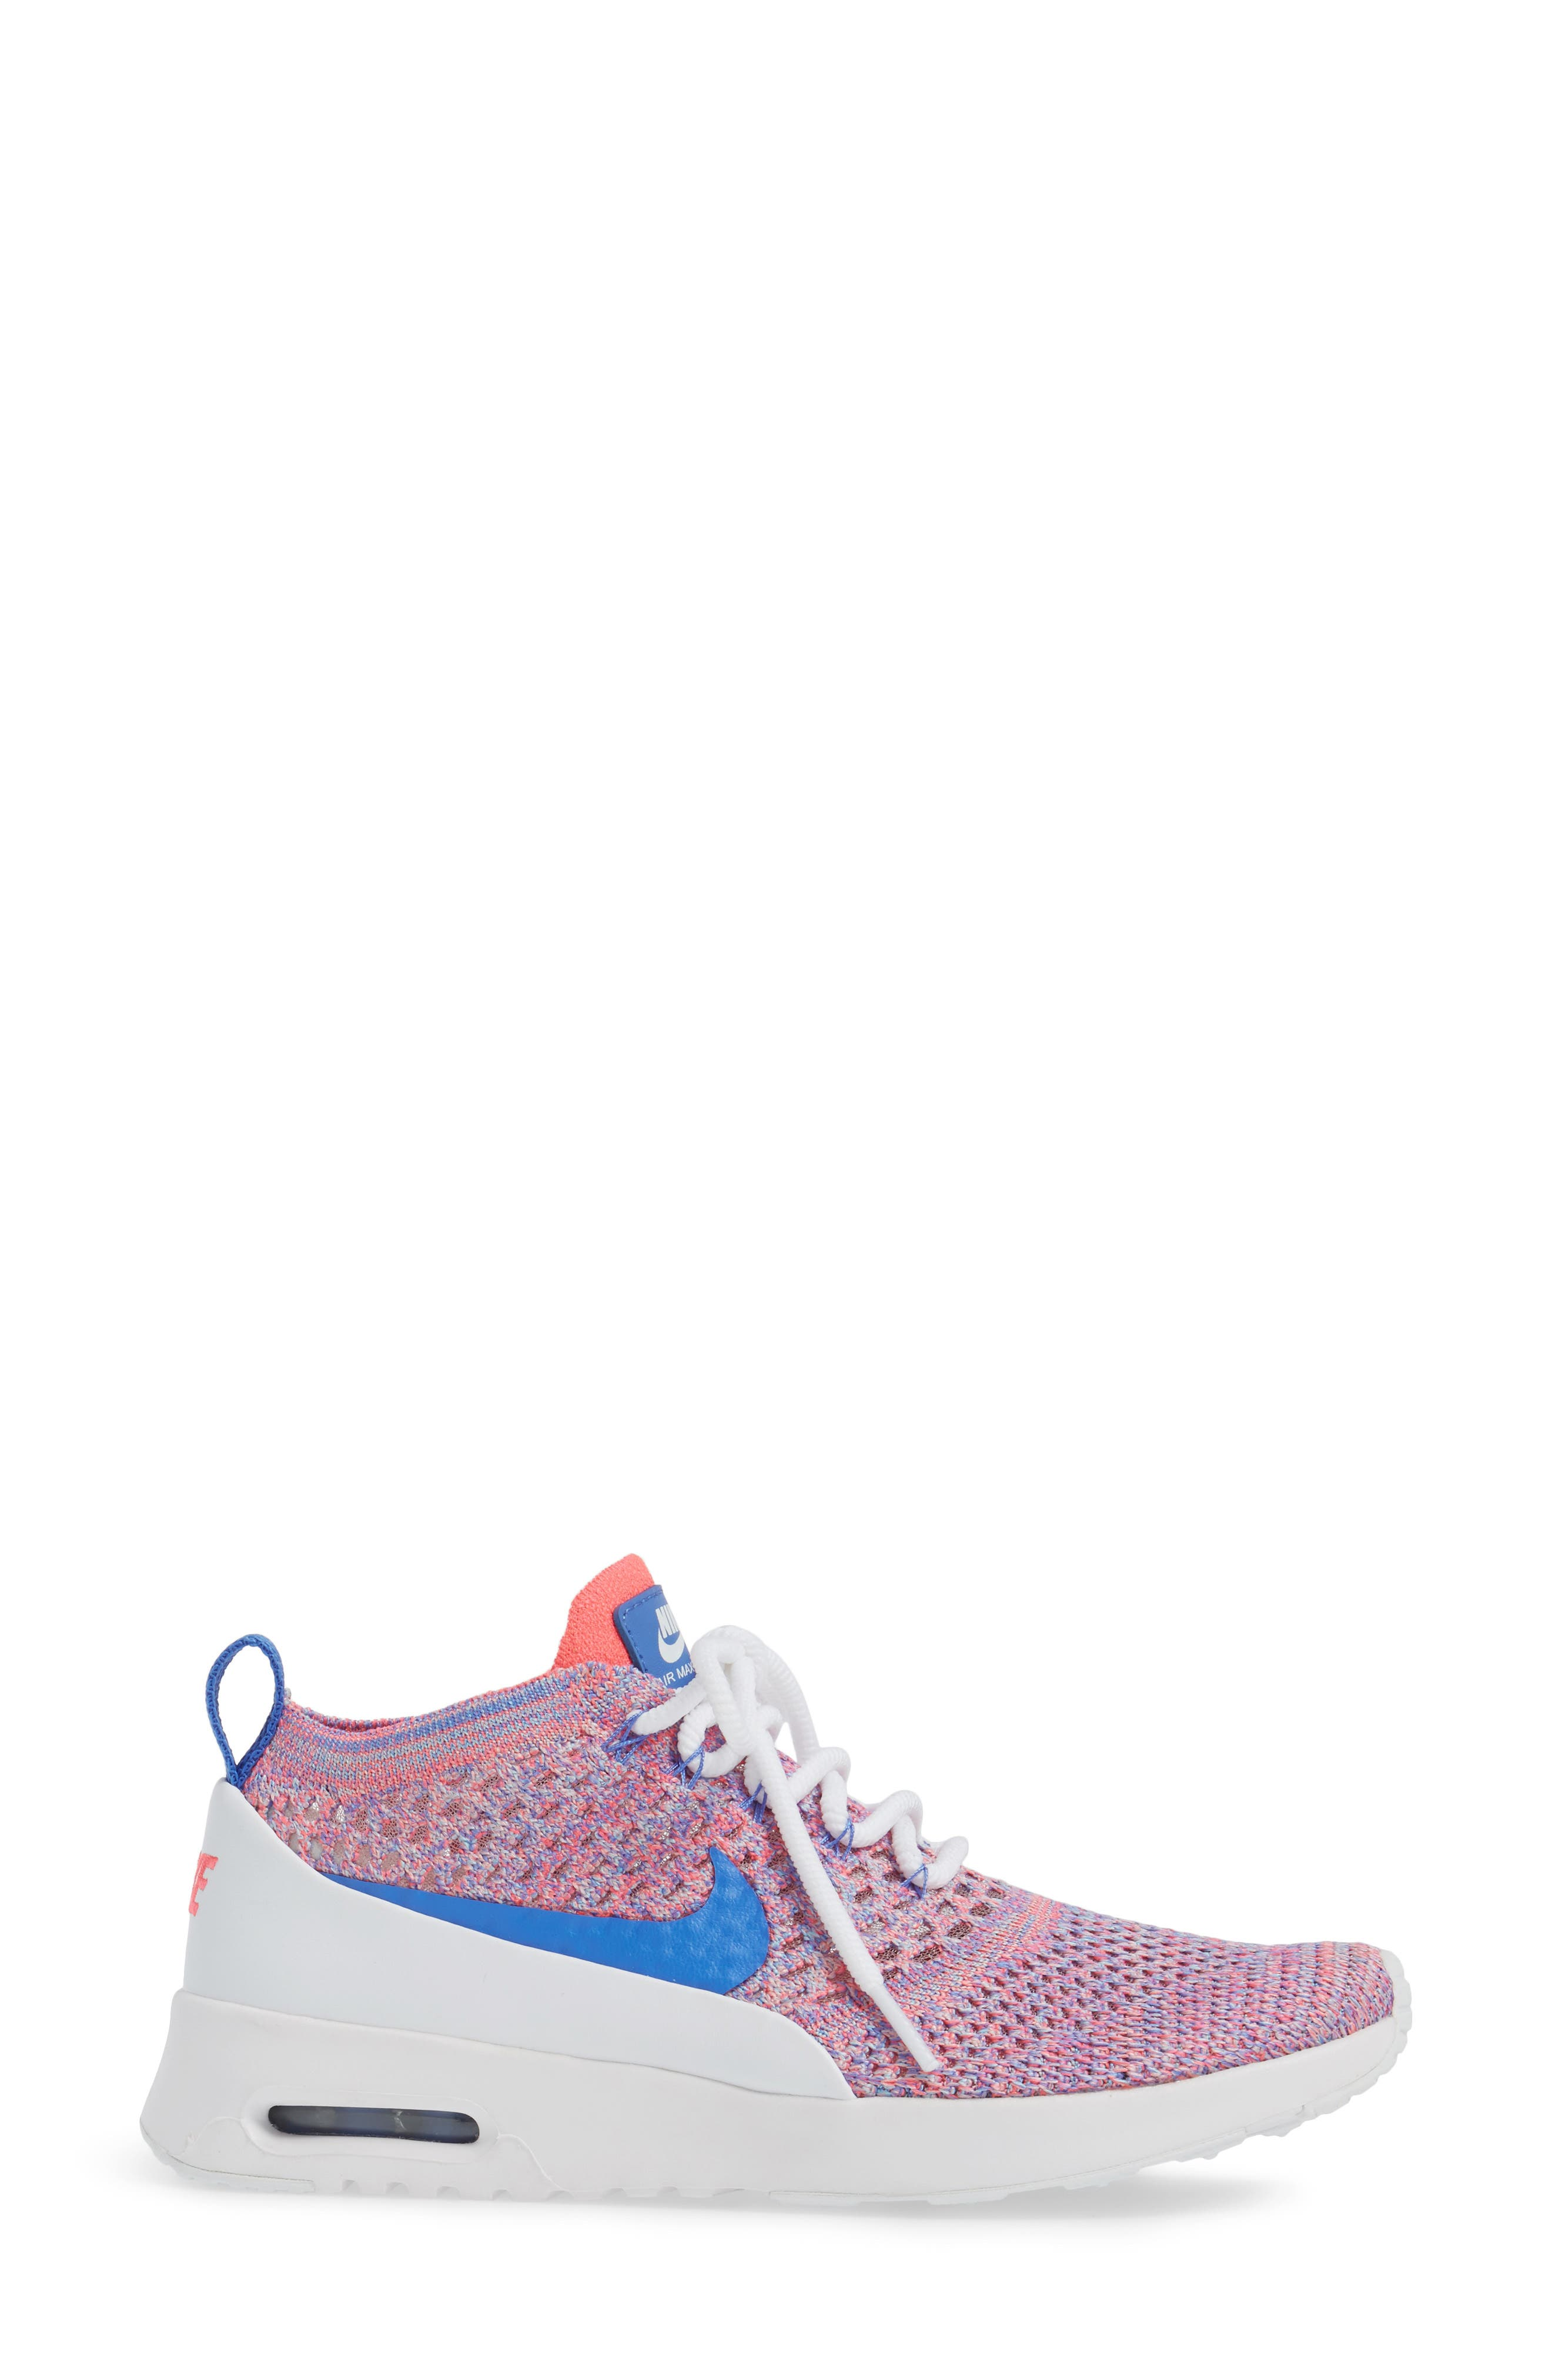 Air Max Thea Ultra Flyknit Sneaker,                             Alternate thumbnail 36, color,